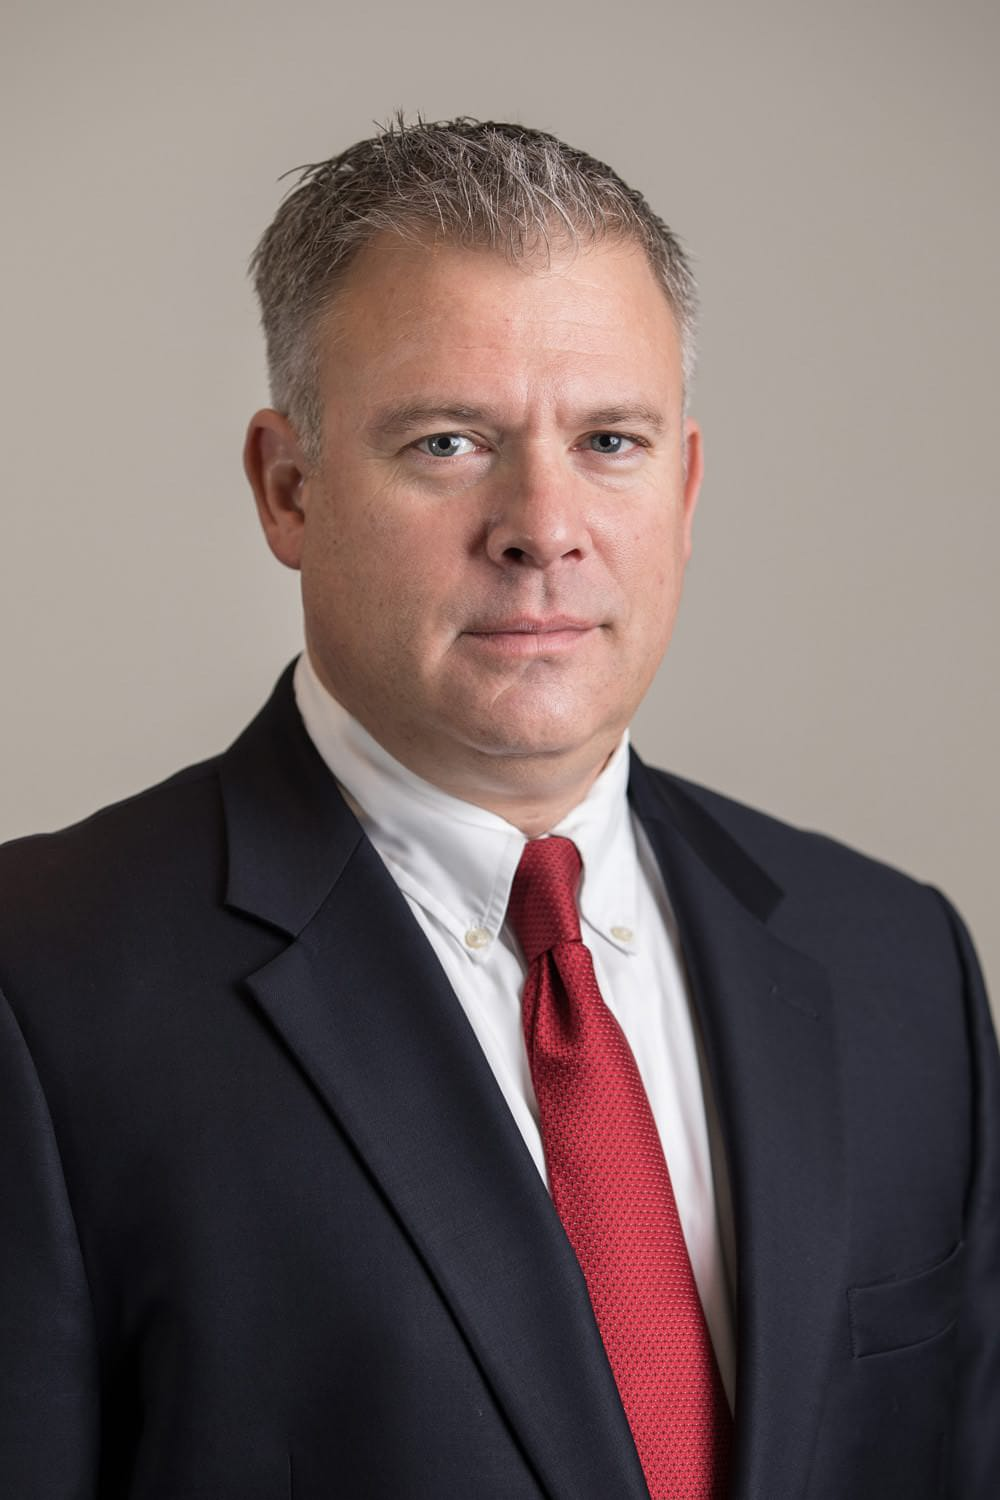 Mark R. Peck Appointed Planning Board Attorney for Township of Bridgewater